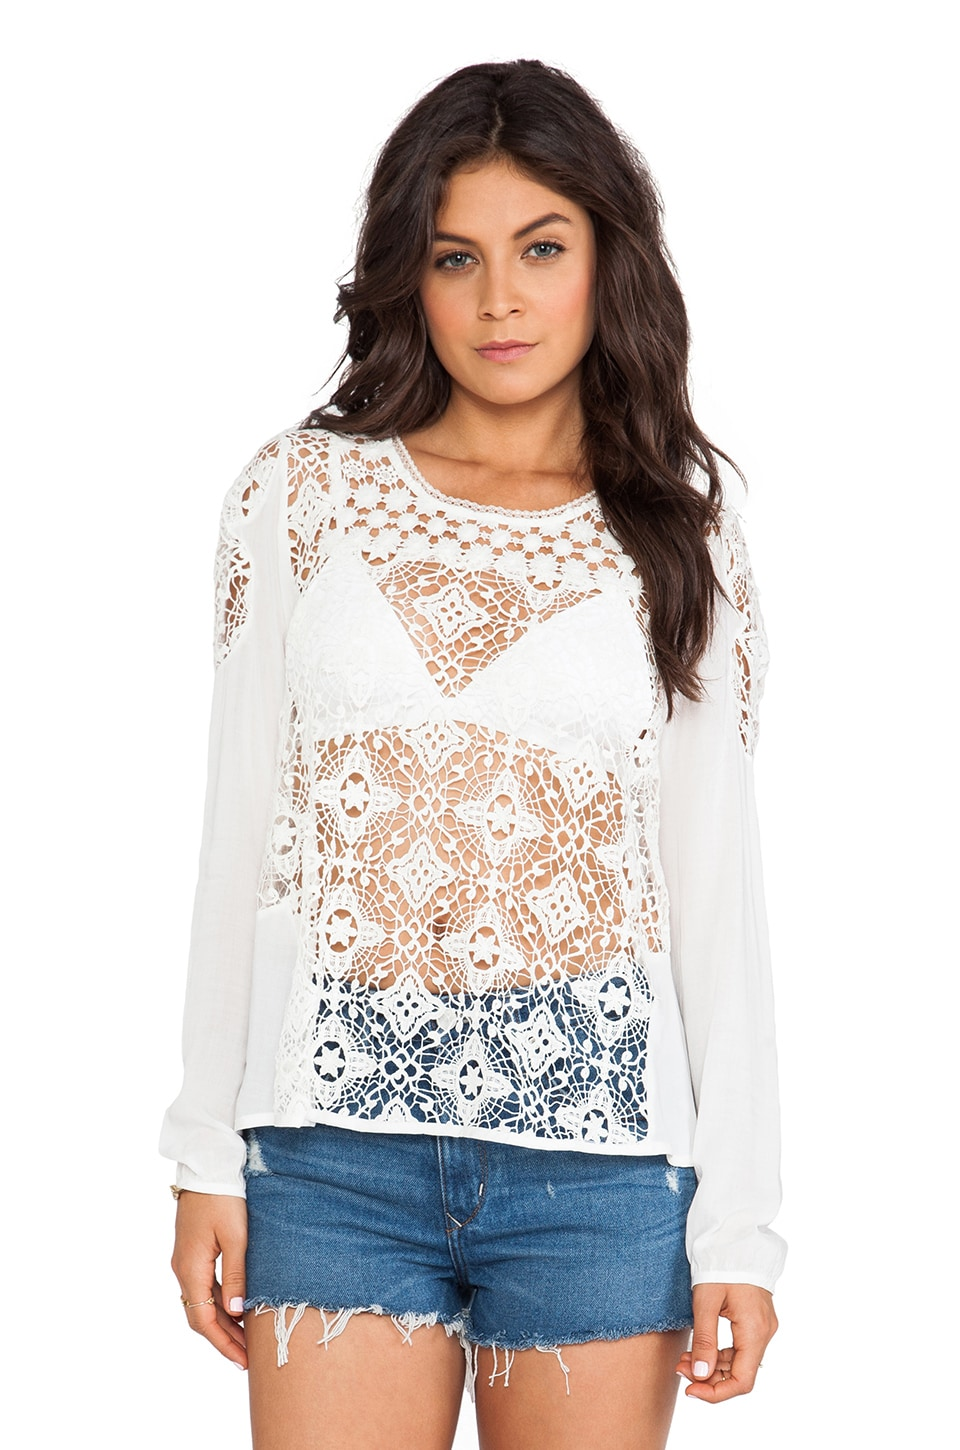 Wish Shimmer Top in White